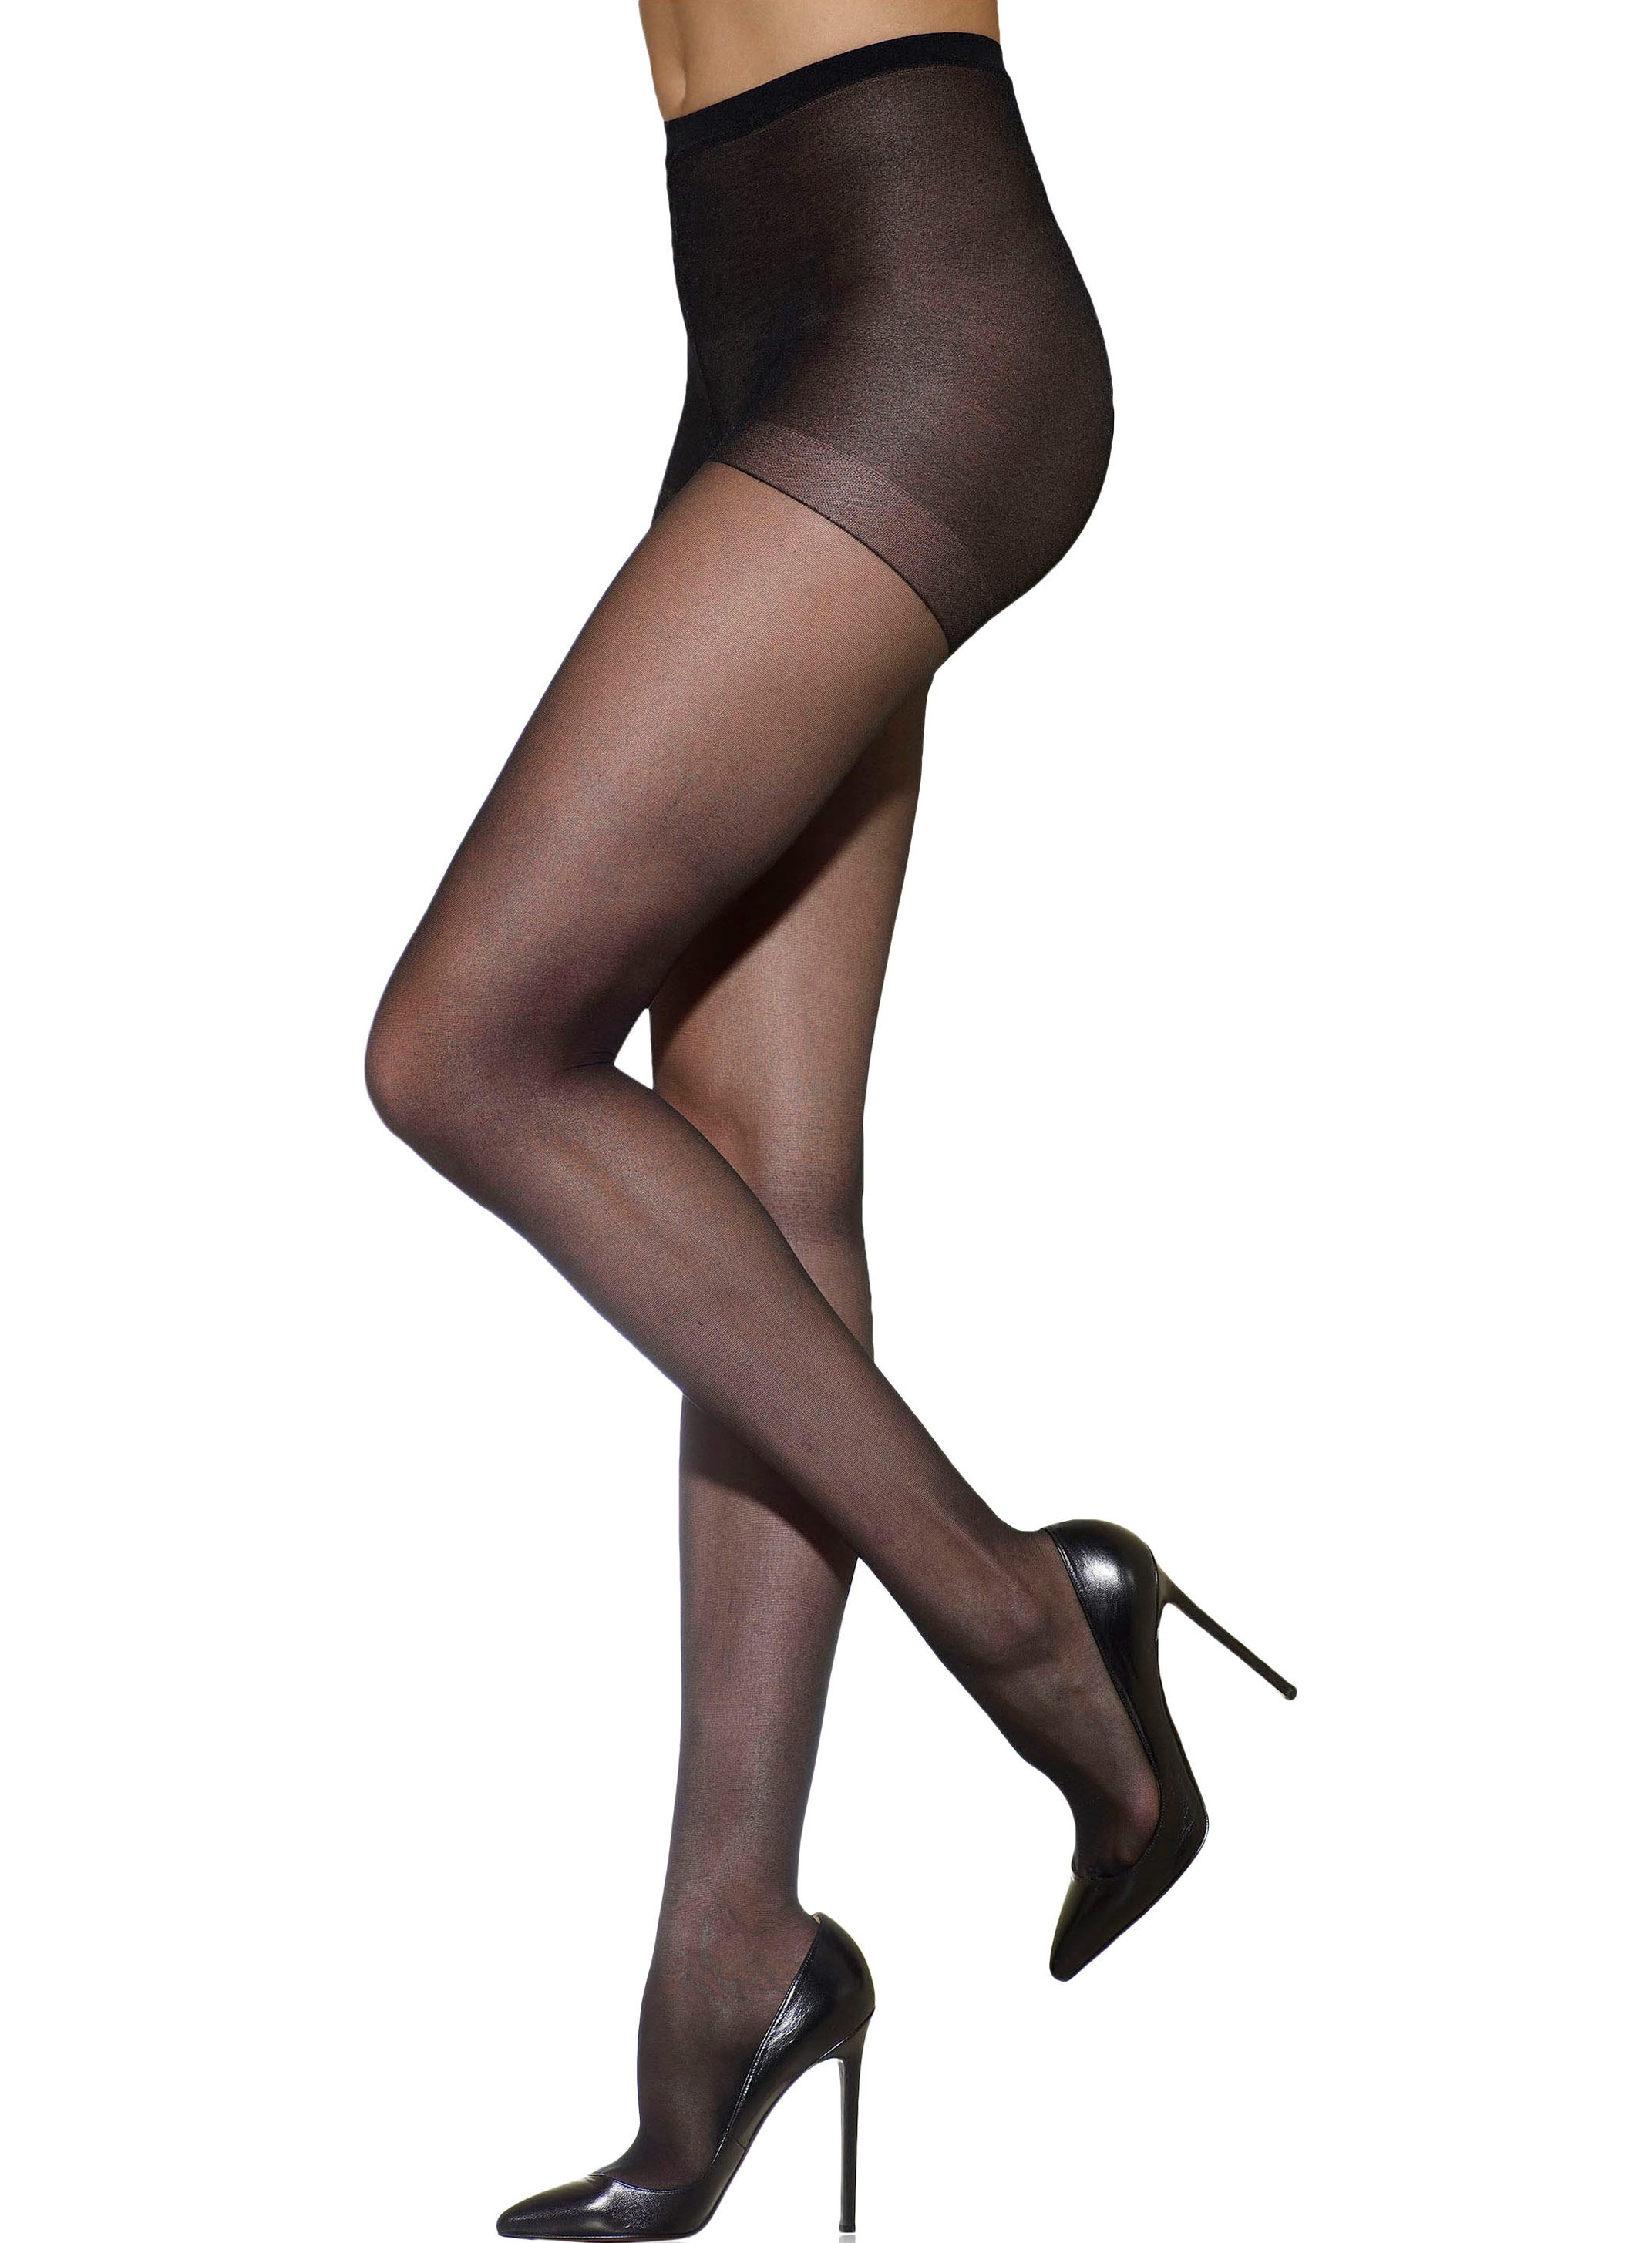 Top Pantyhose Is 38